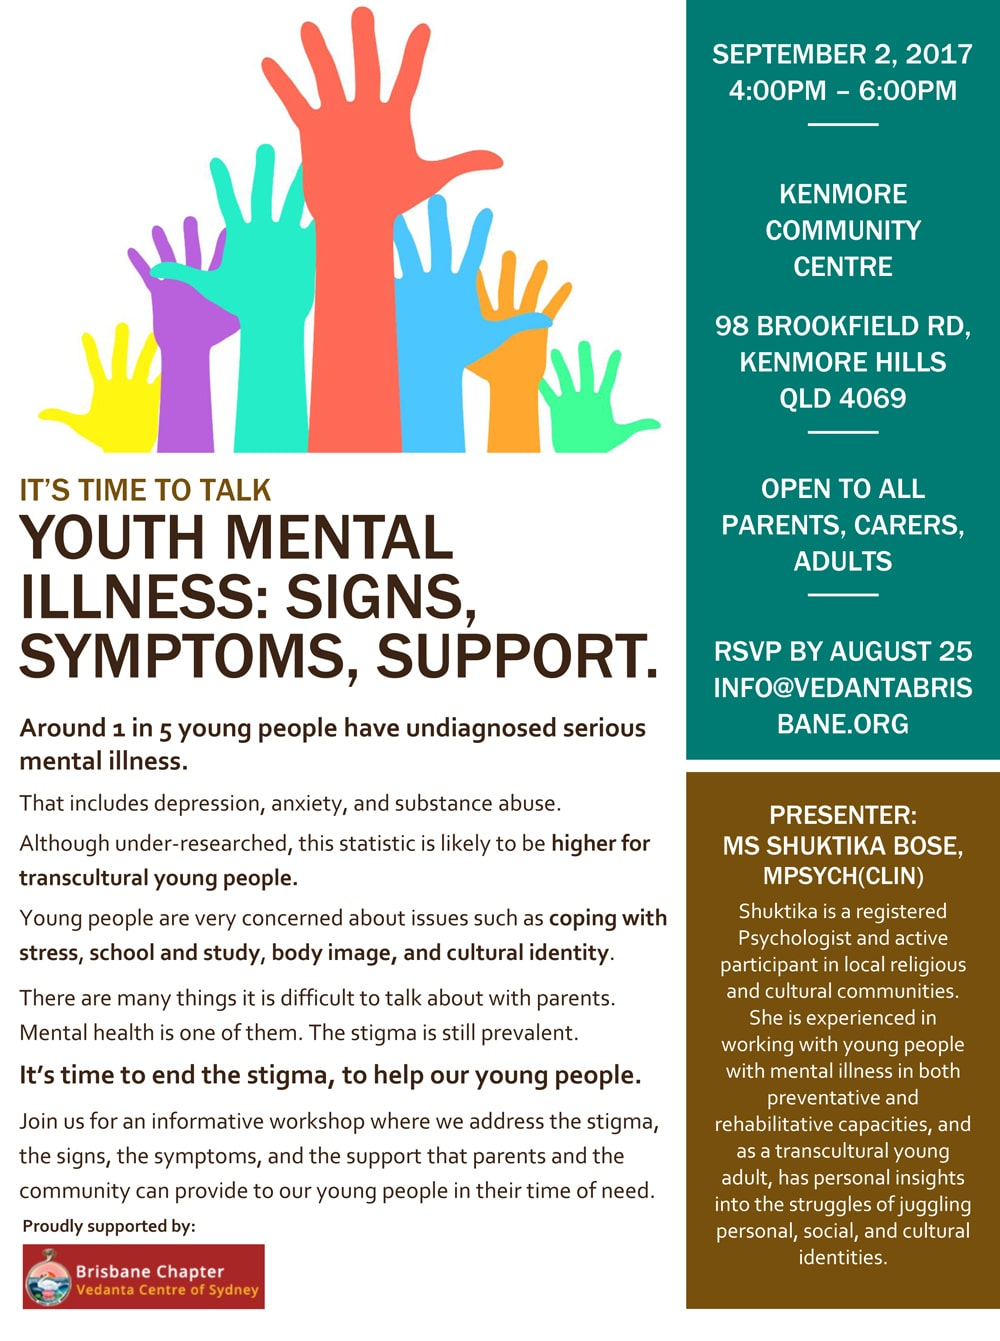 It's Time To Talk  Youth Mental Illness Signs, Symptoms. Airies Signs Of Stroke. Sabs Signs. 10 Traffic Signs Of Stroke. Corona Signs Of Stroke. Humidity Signs. Second Grade Signs. Syptoms Signs Of Stroke. Centria Autism Signs